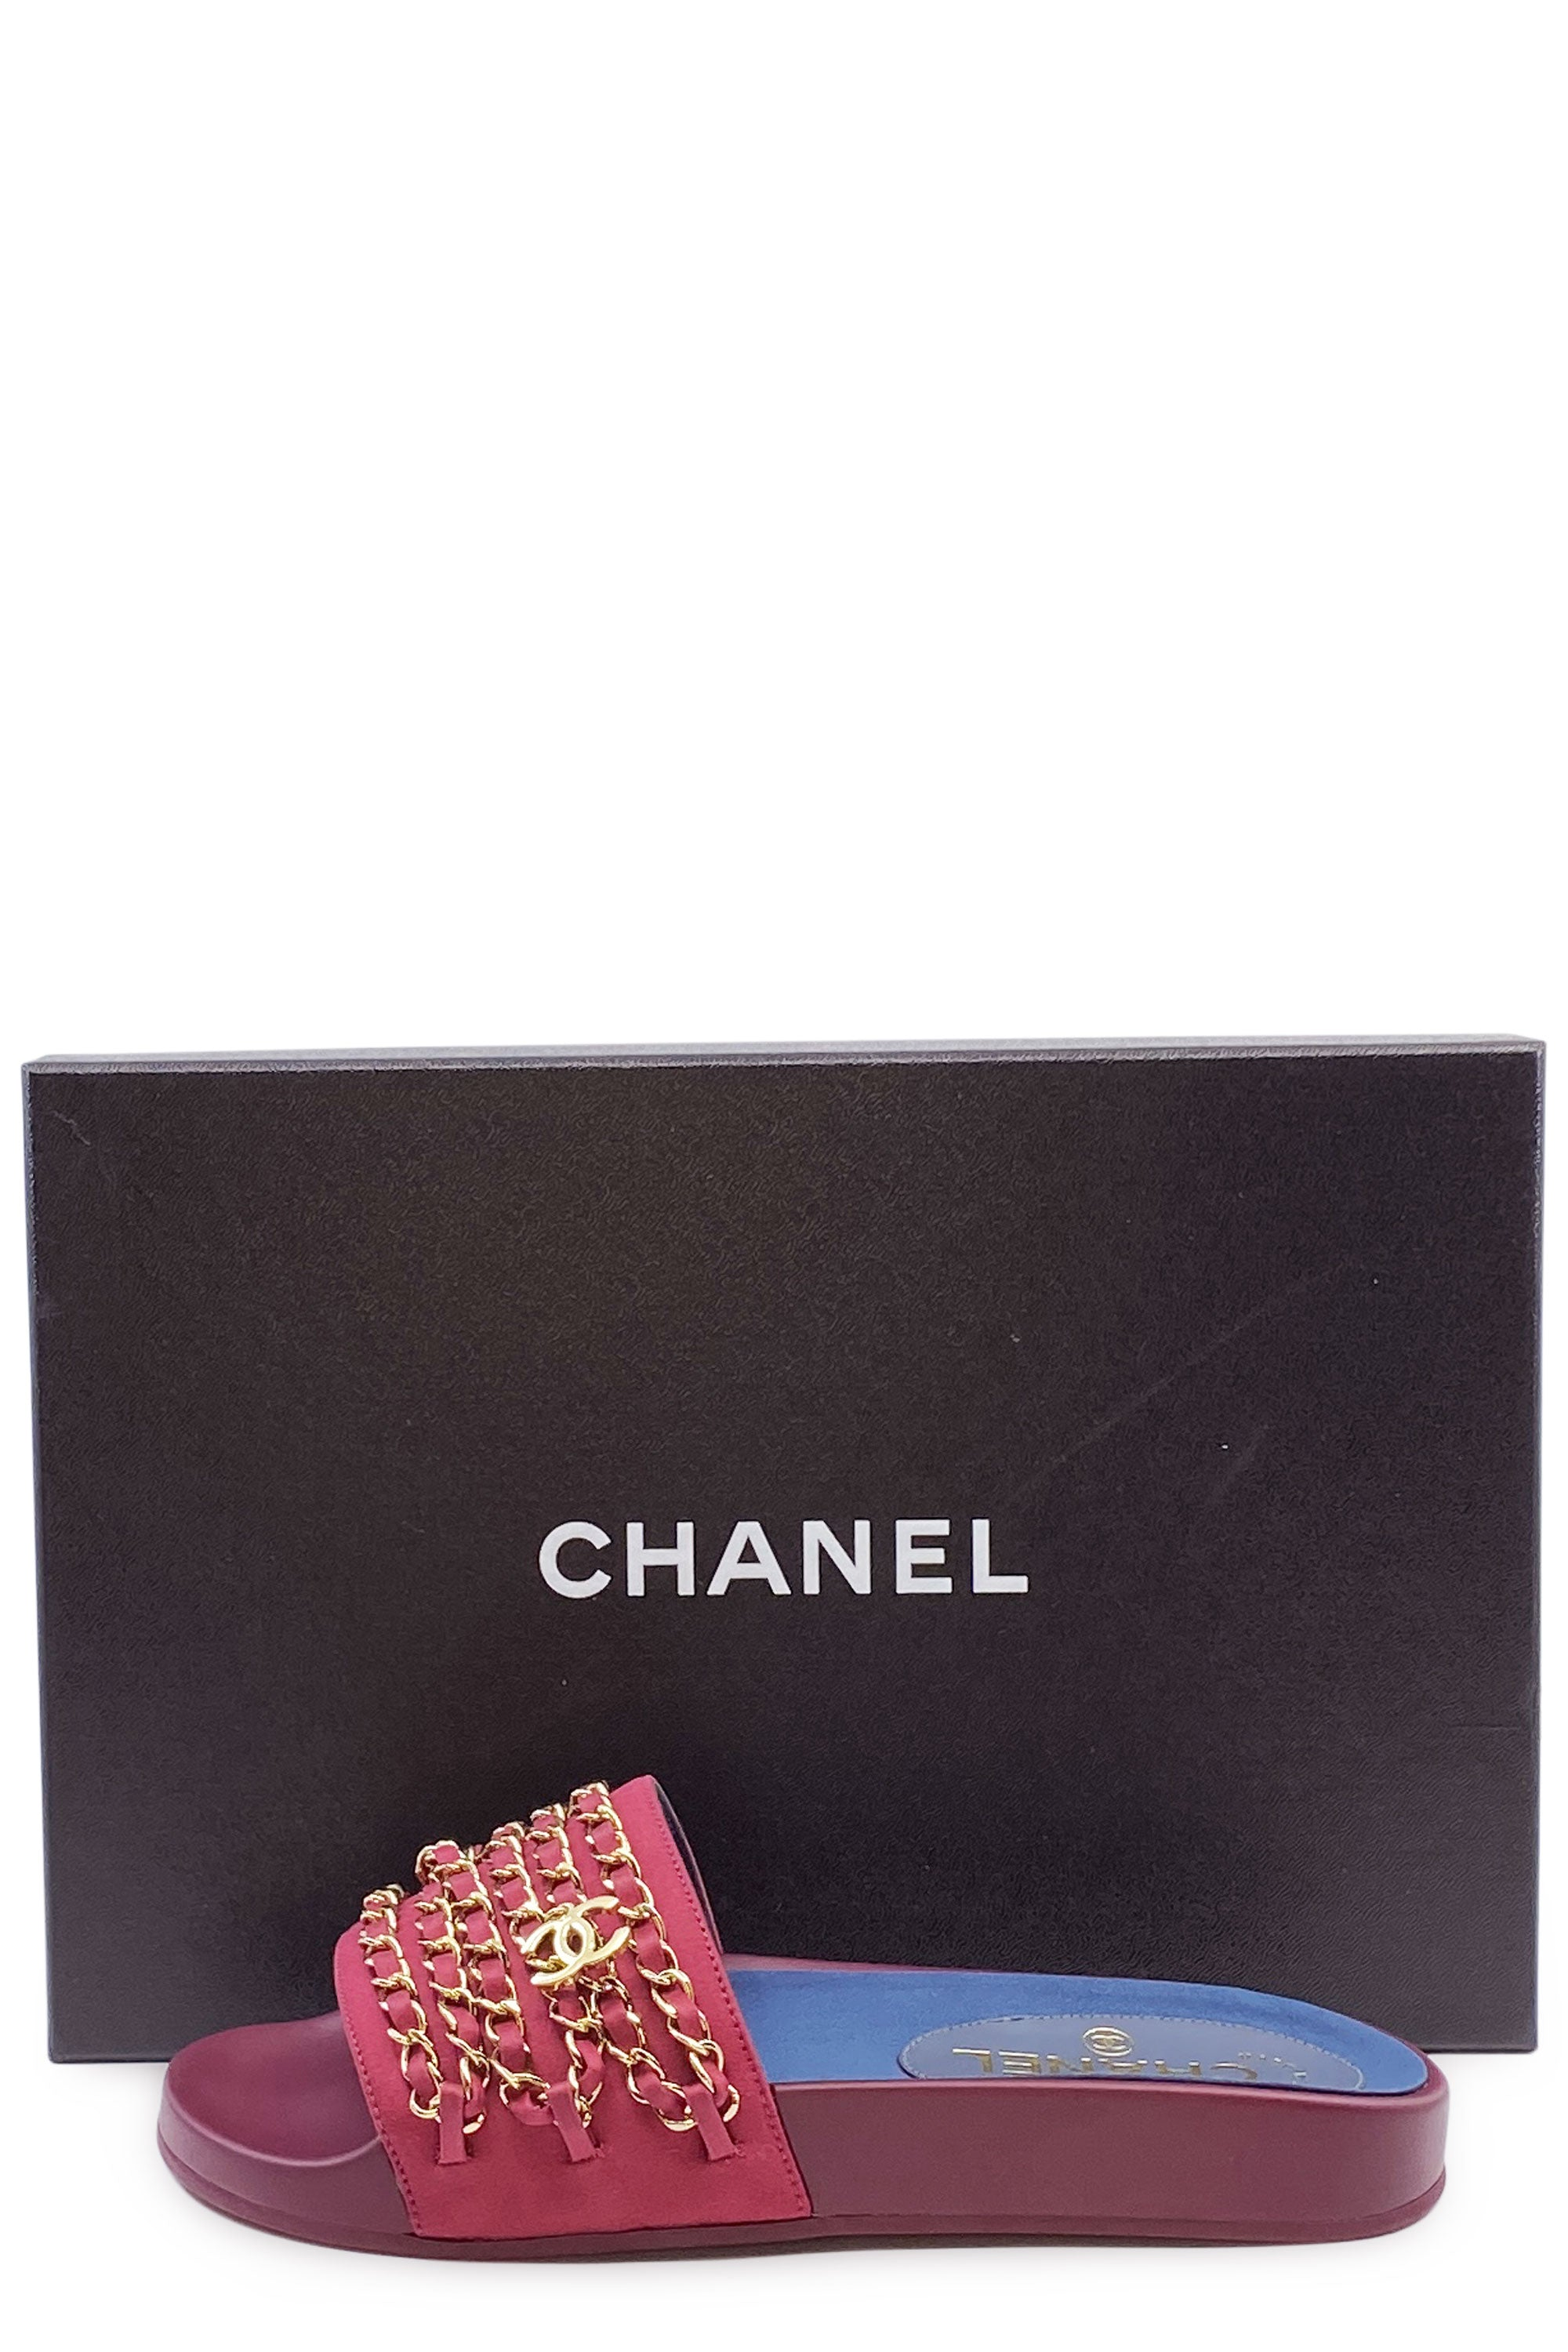 CHANEL Gold Chain Sandal Slide